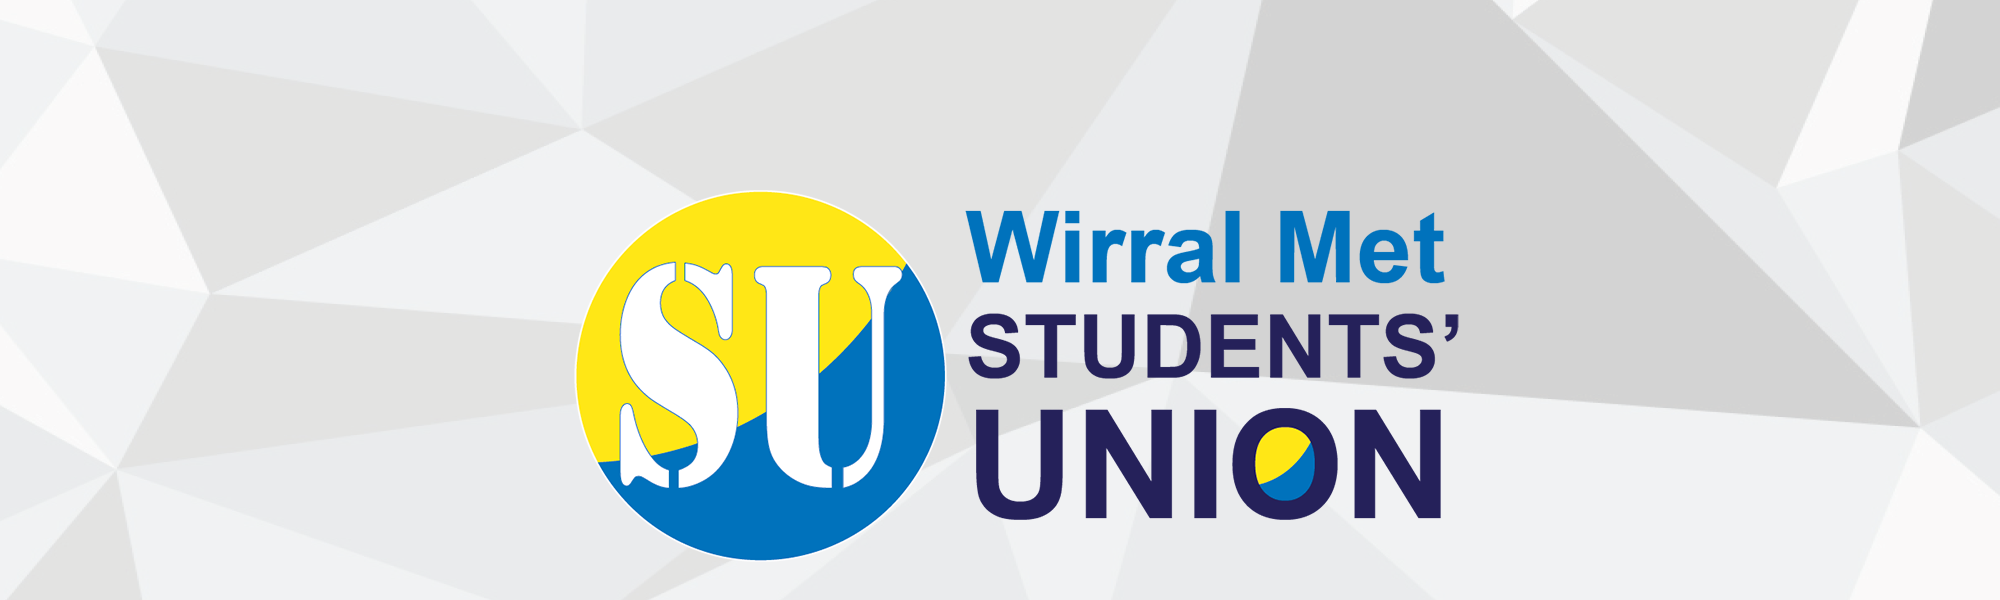 The Students' Union is a voluntary body run by students for students and is available to help you settle into Wirral Met College